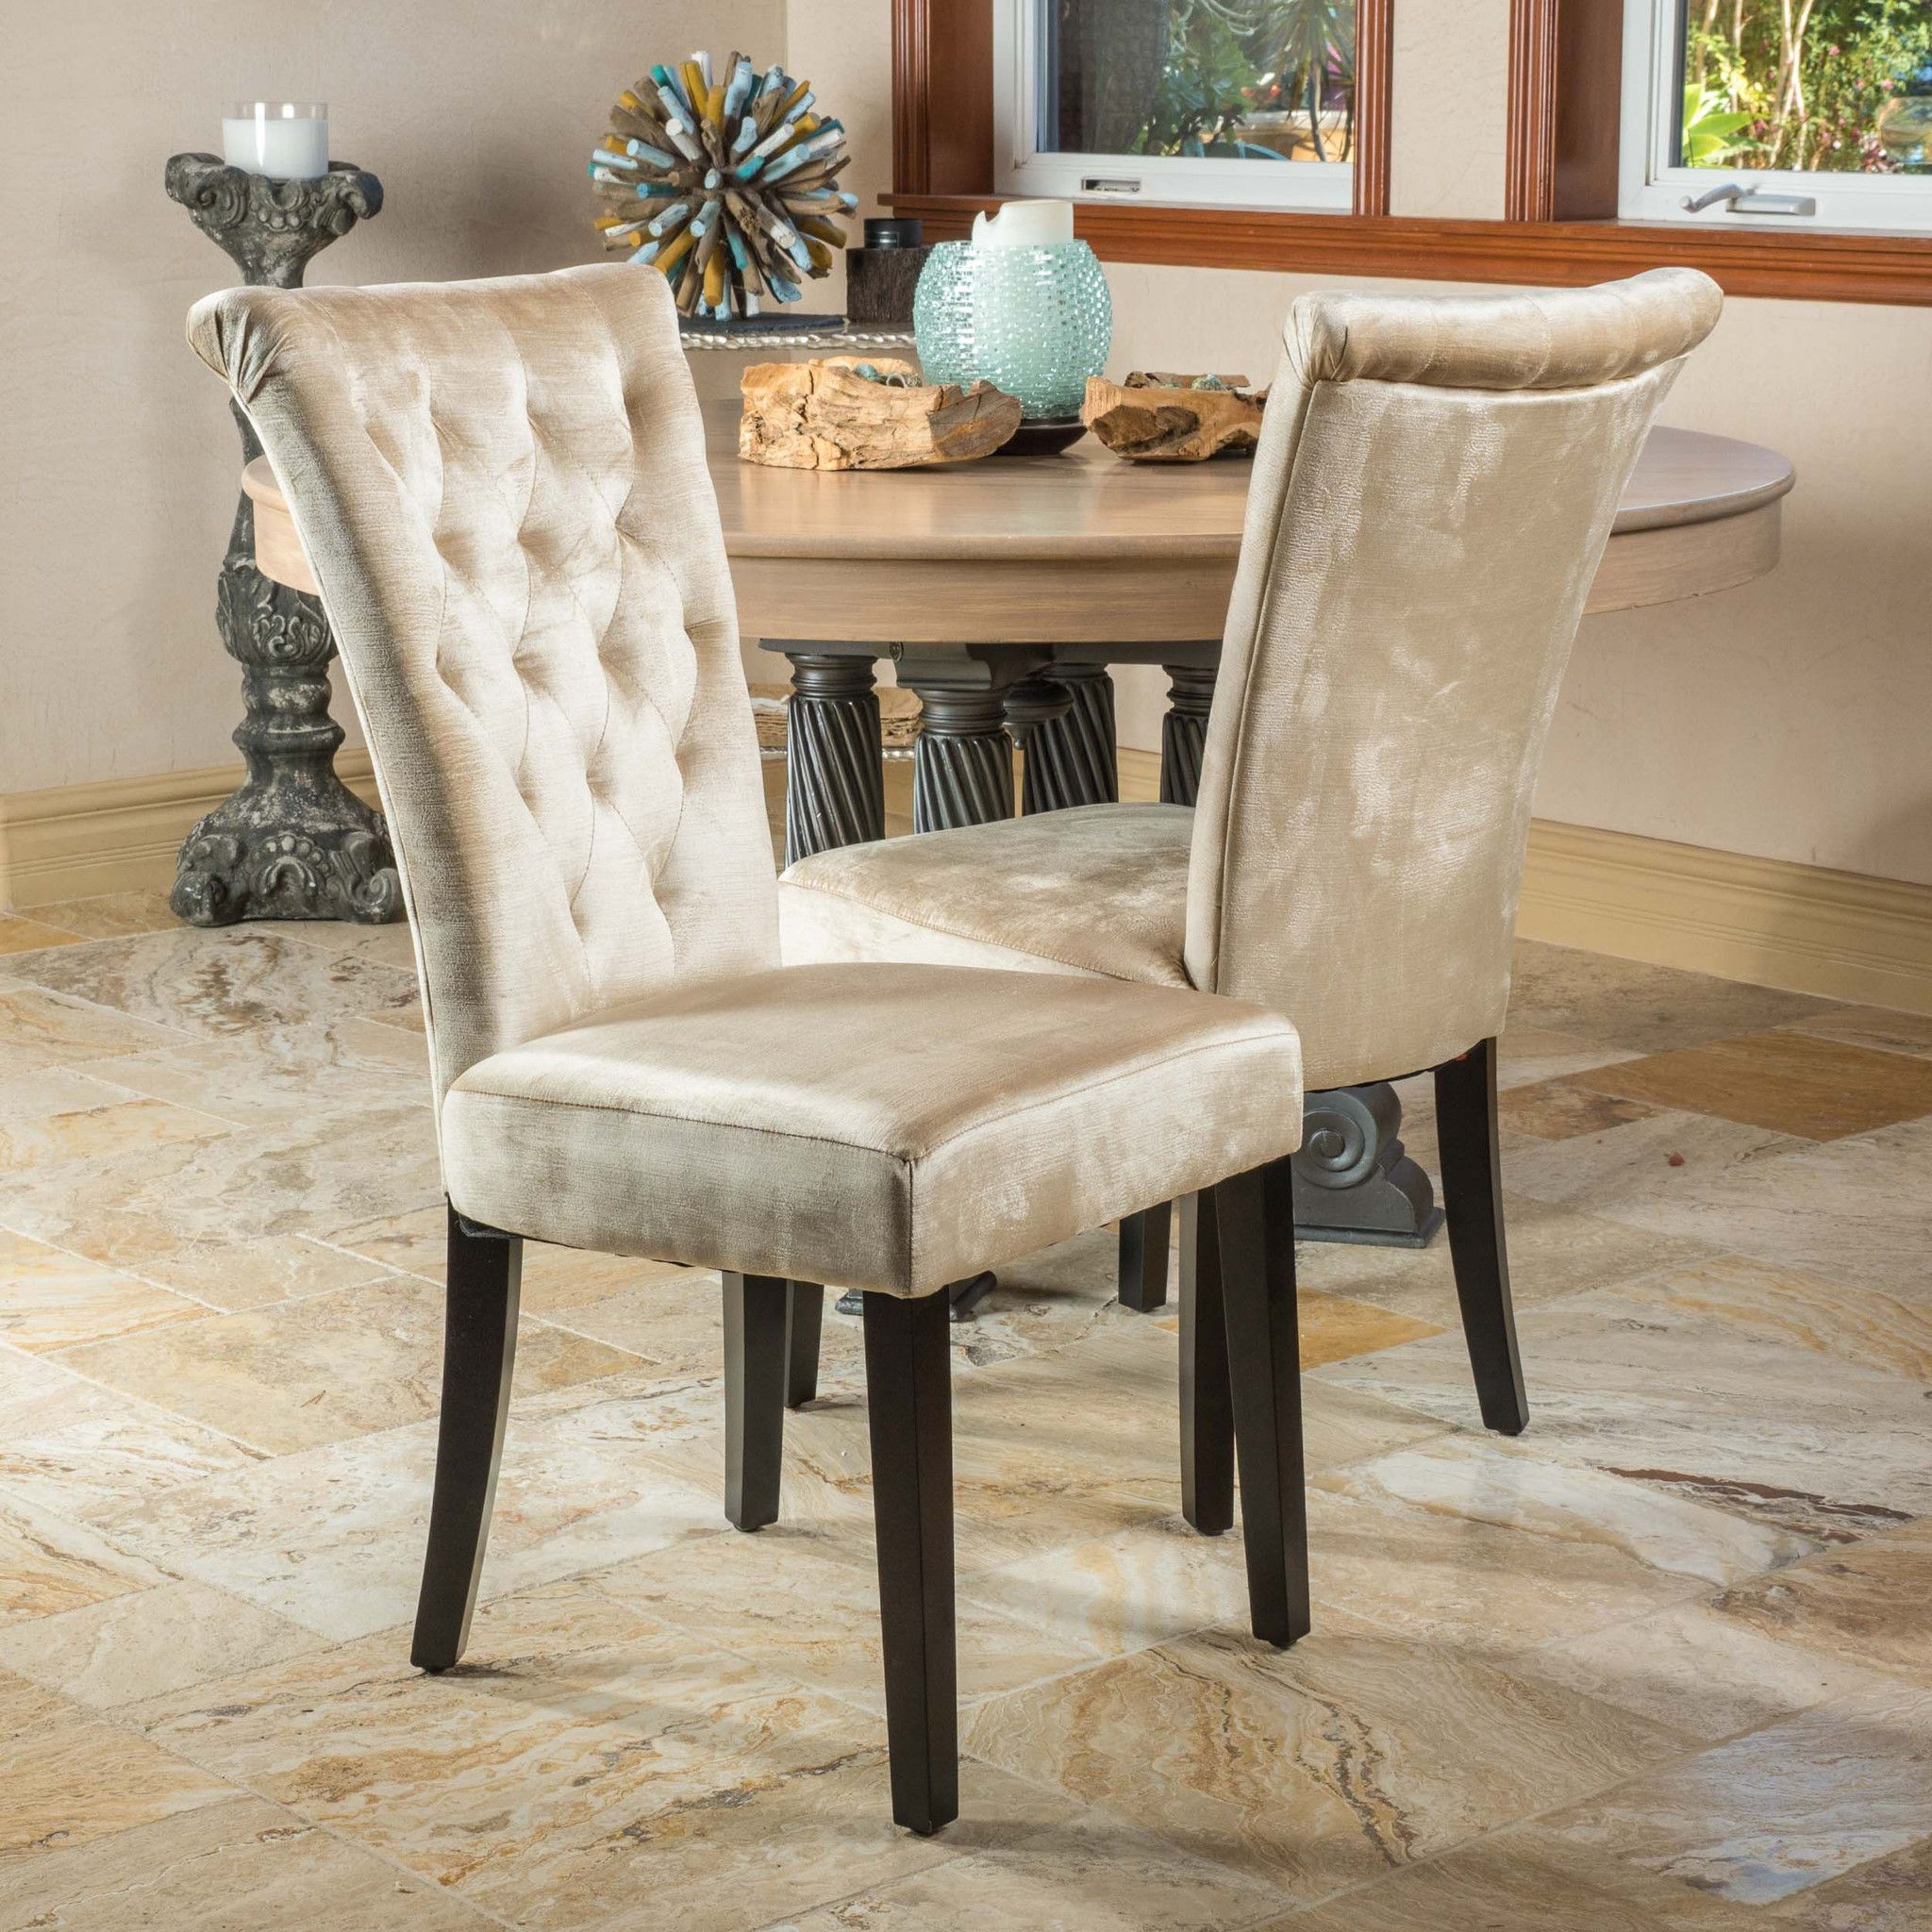 Paulina Champagne Velvet Dining Chairs Set of 2